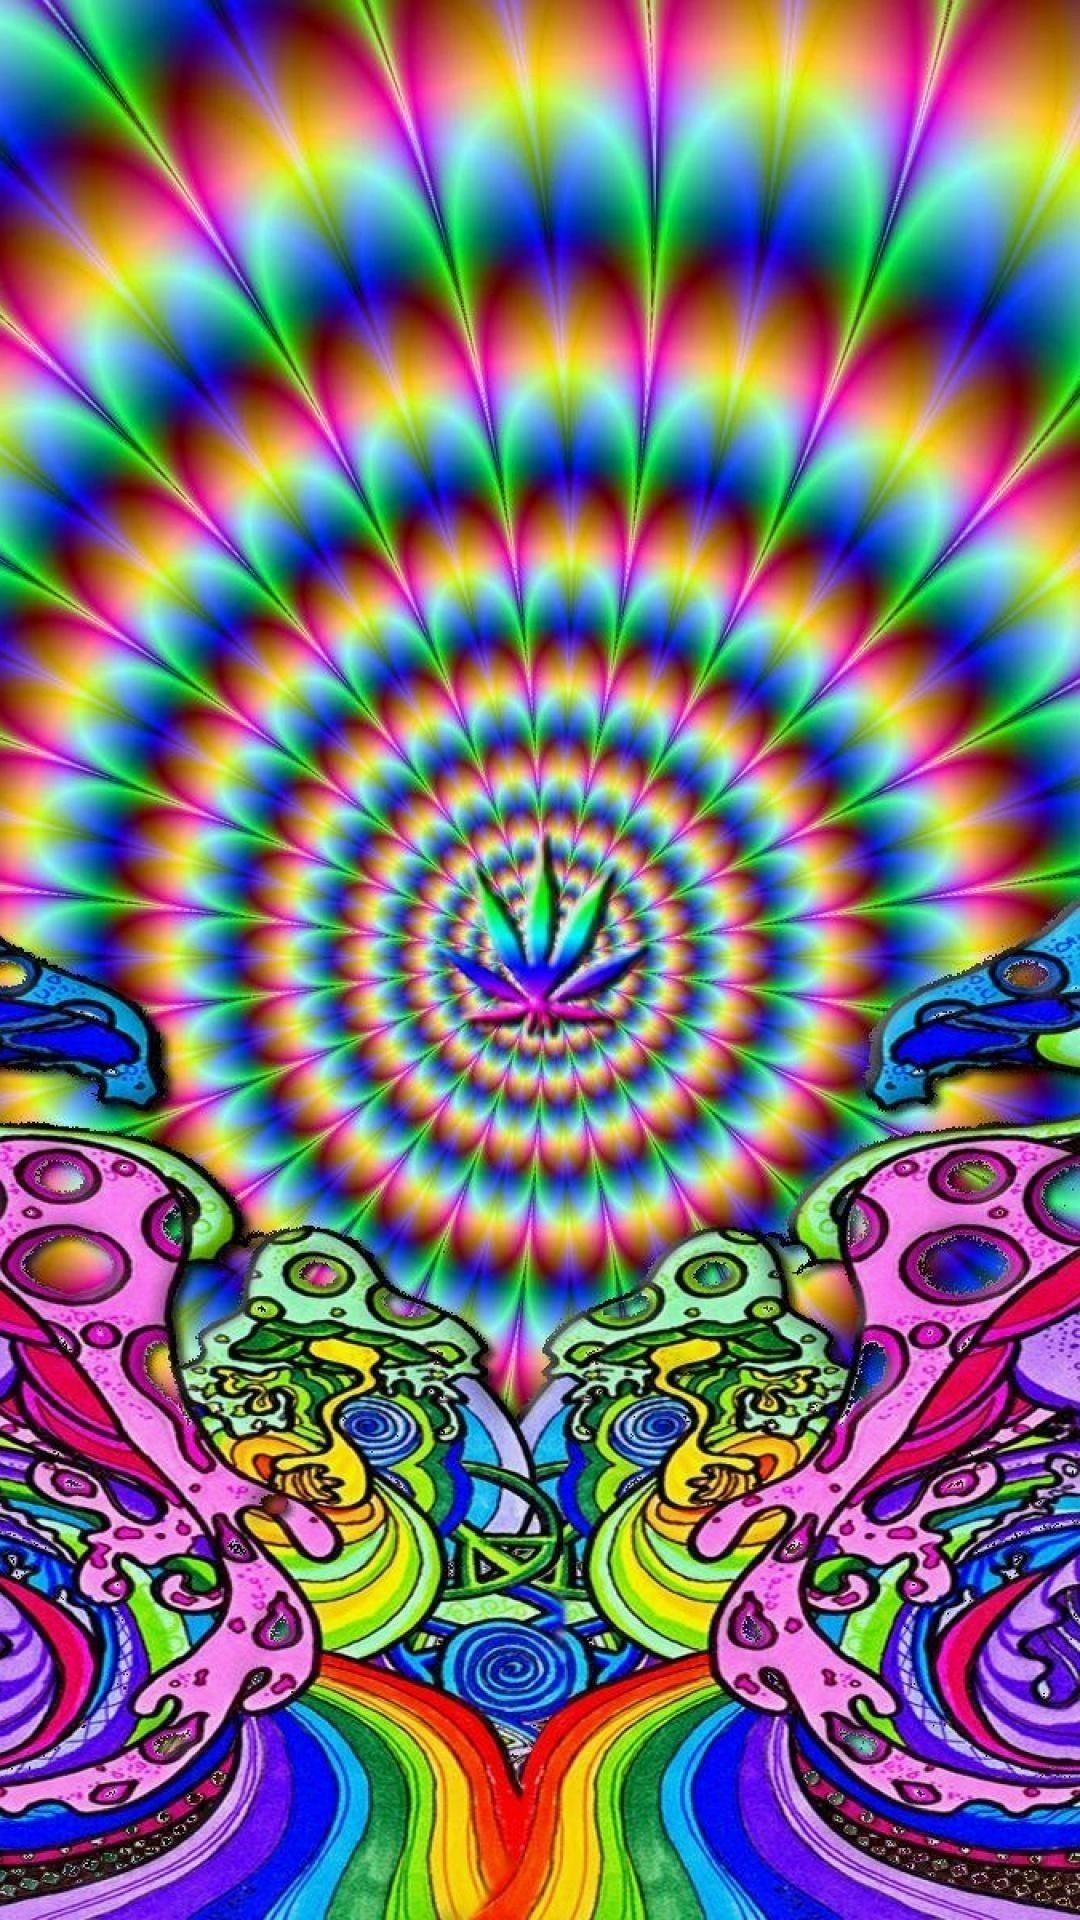 Psychedelic Crazy Android Background Psychedelic Crazy